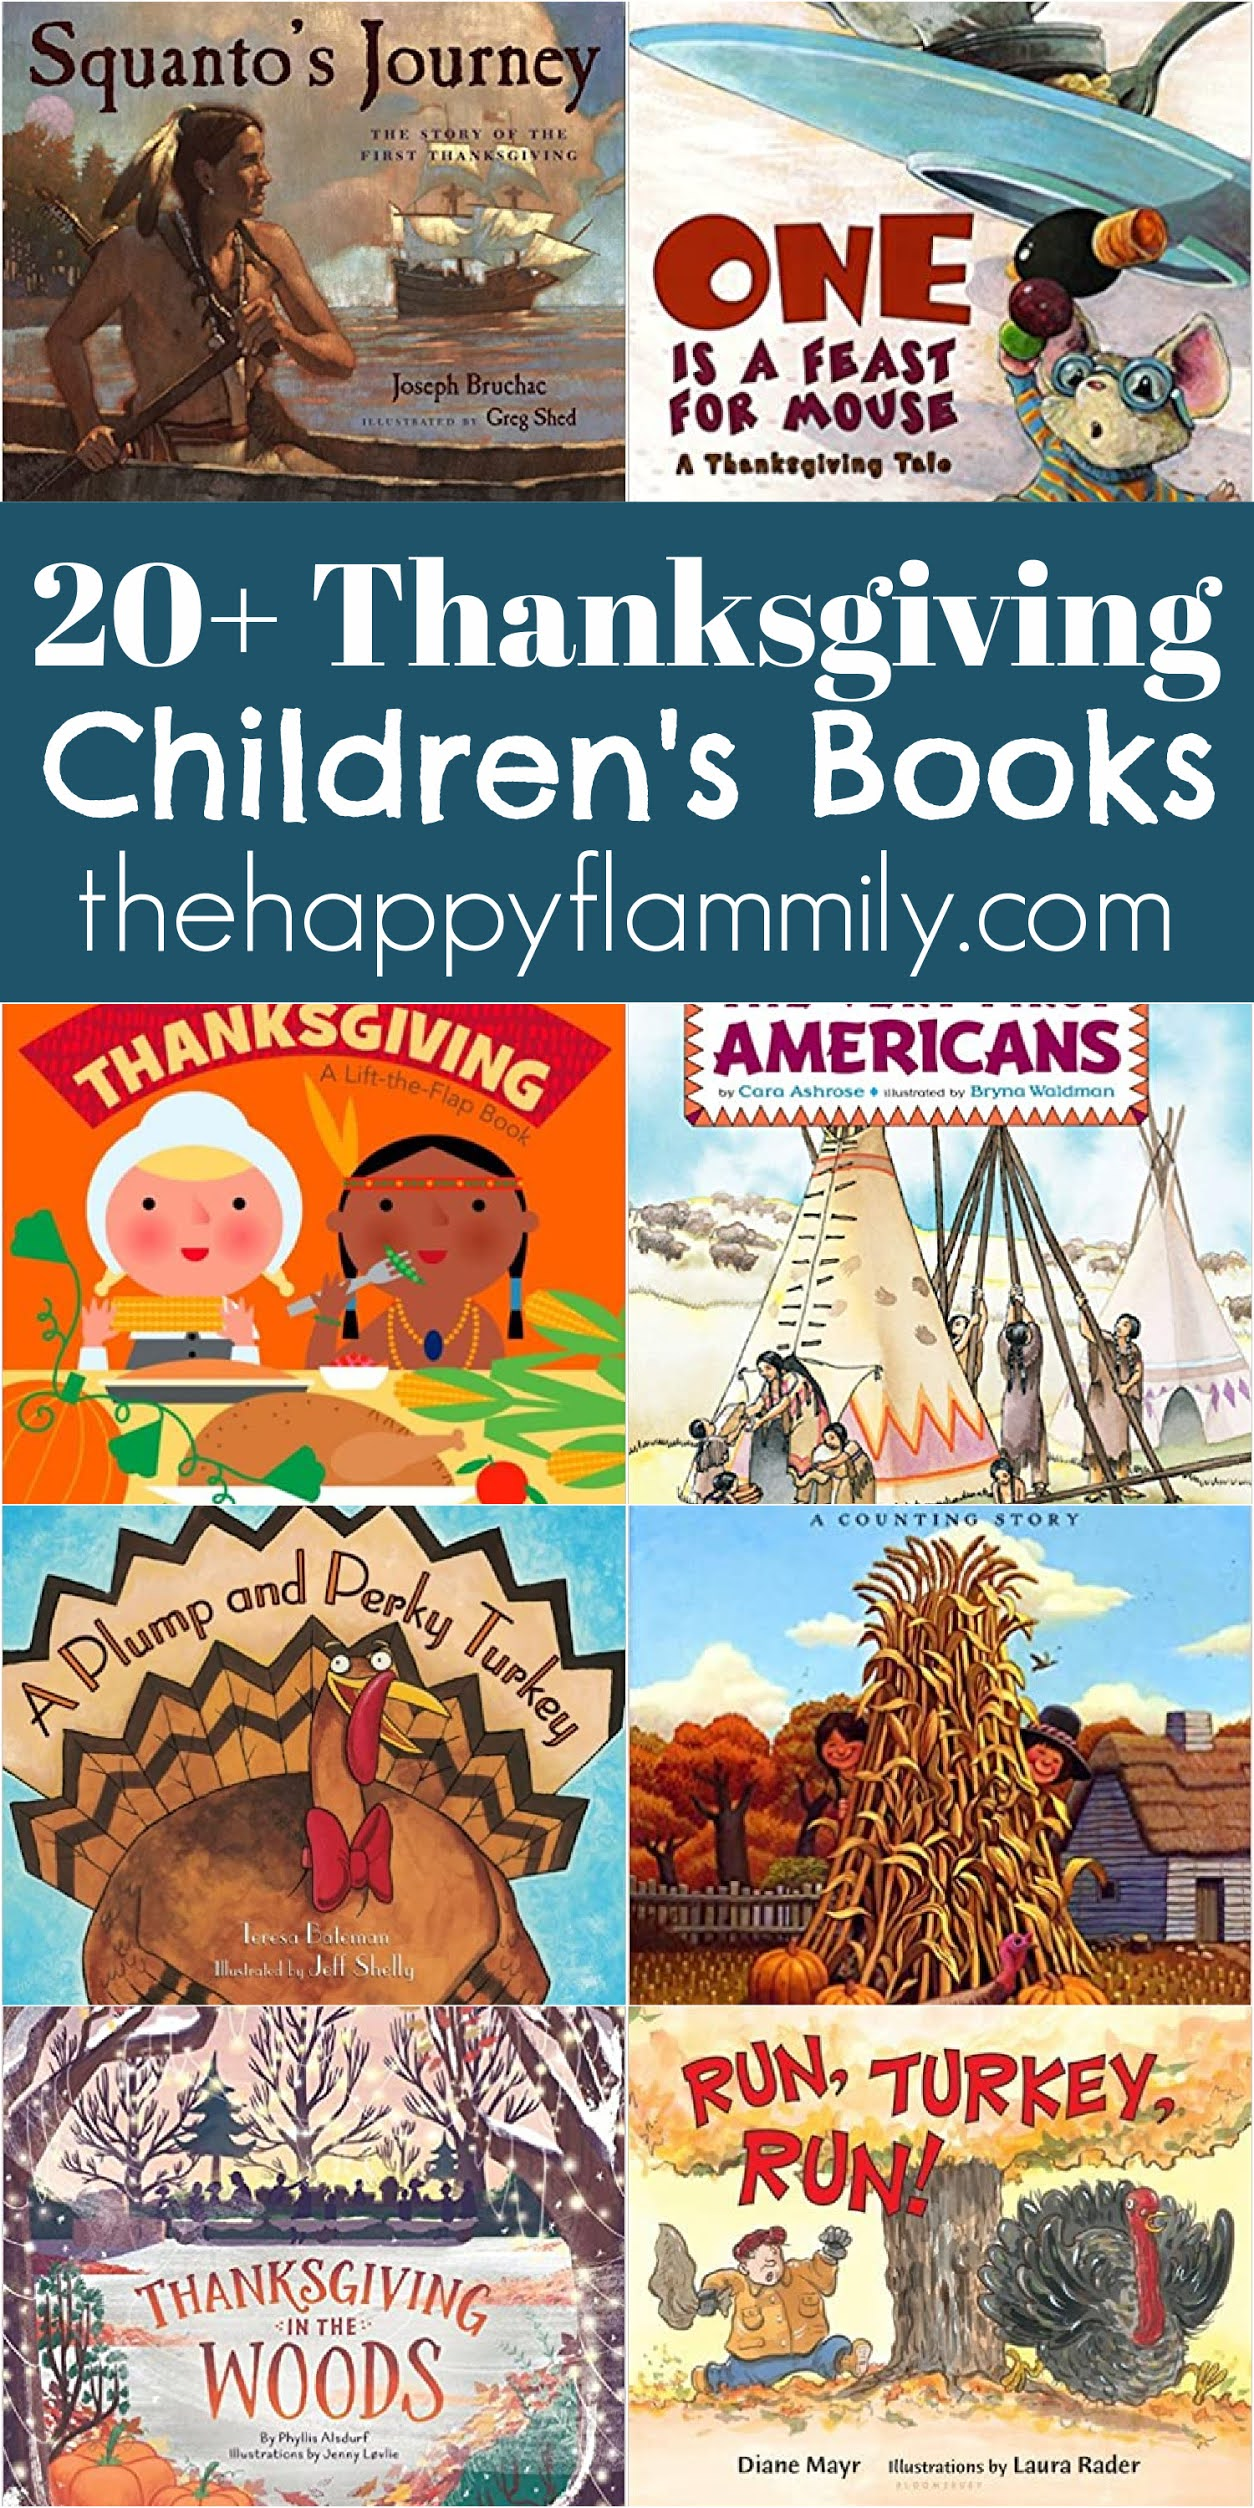 Historically accurate thanksgiving books. Thanksgiving books for preschoolers. Thanksgiving books for elementary students. Thanksgiving books for kids. Thanksgiving children's books. #books #kids #school #thanksgiving #education #booklist #fallbooks #thanksgivingbooks